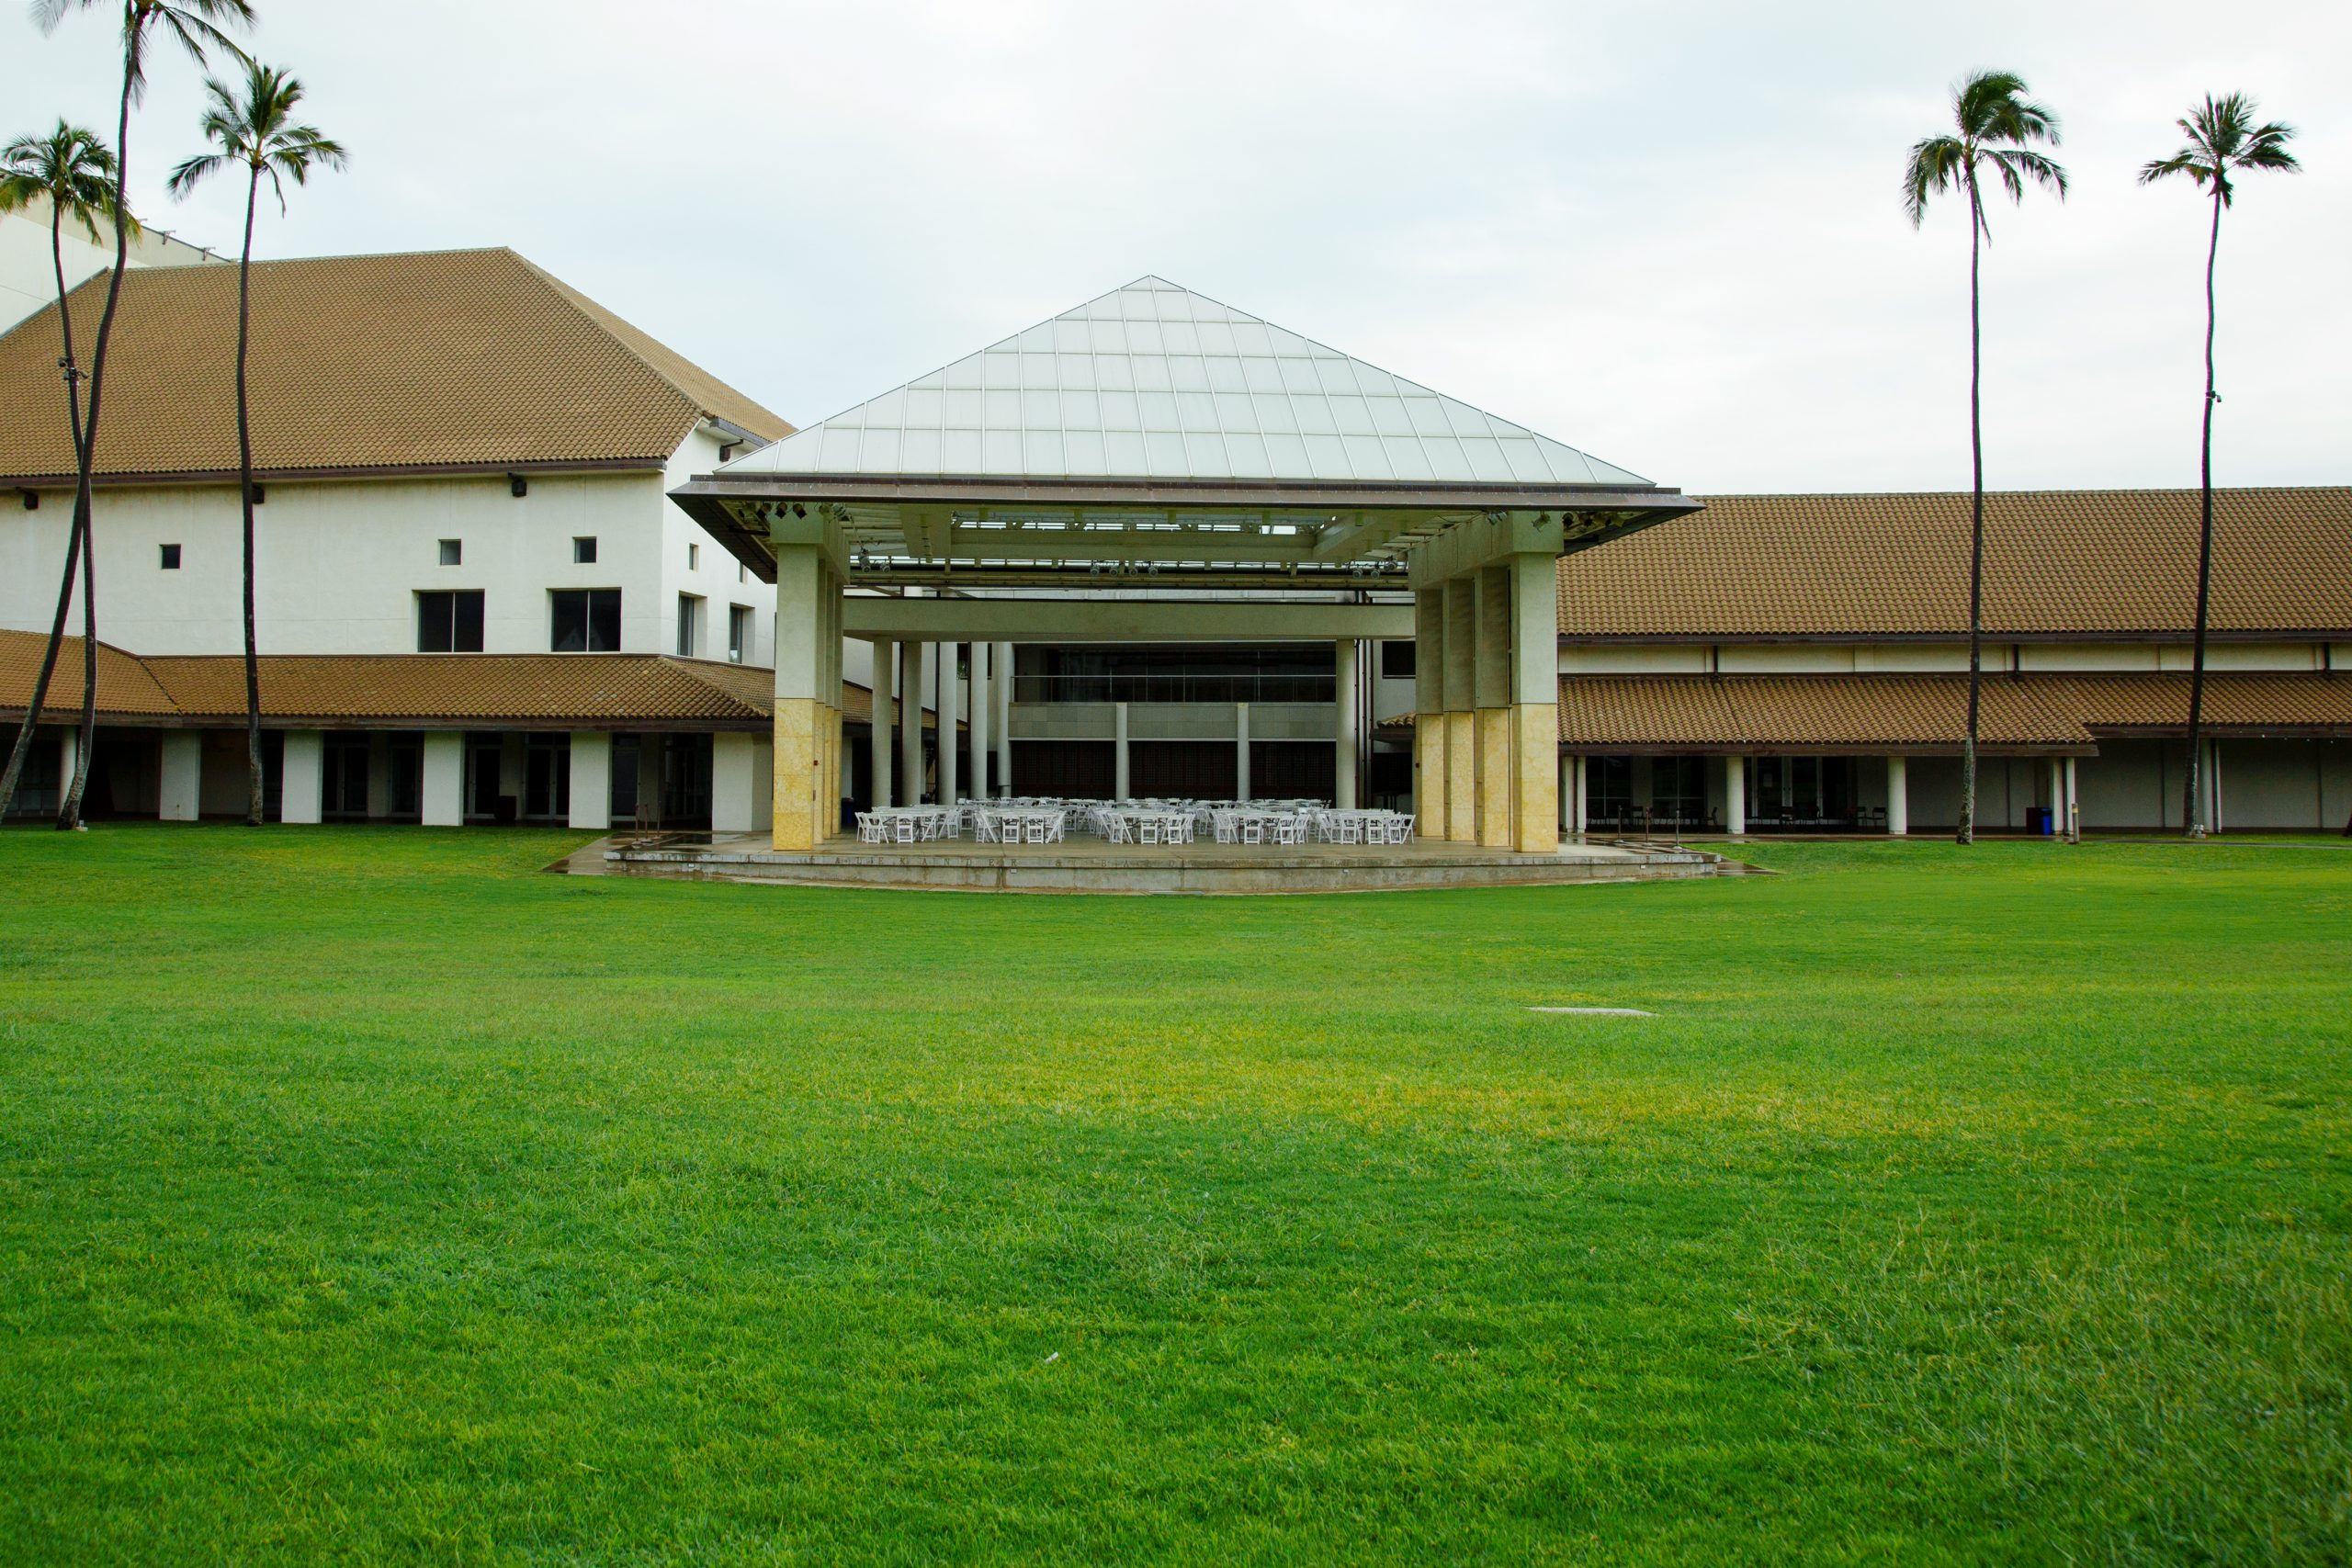 MauiArts And CulturalCenter - MACC